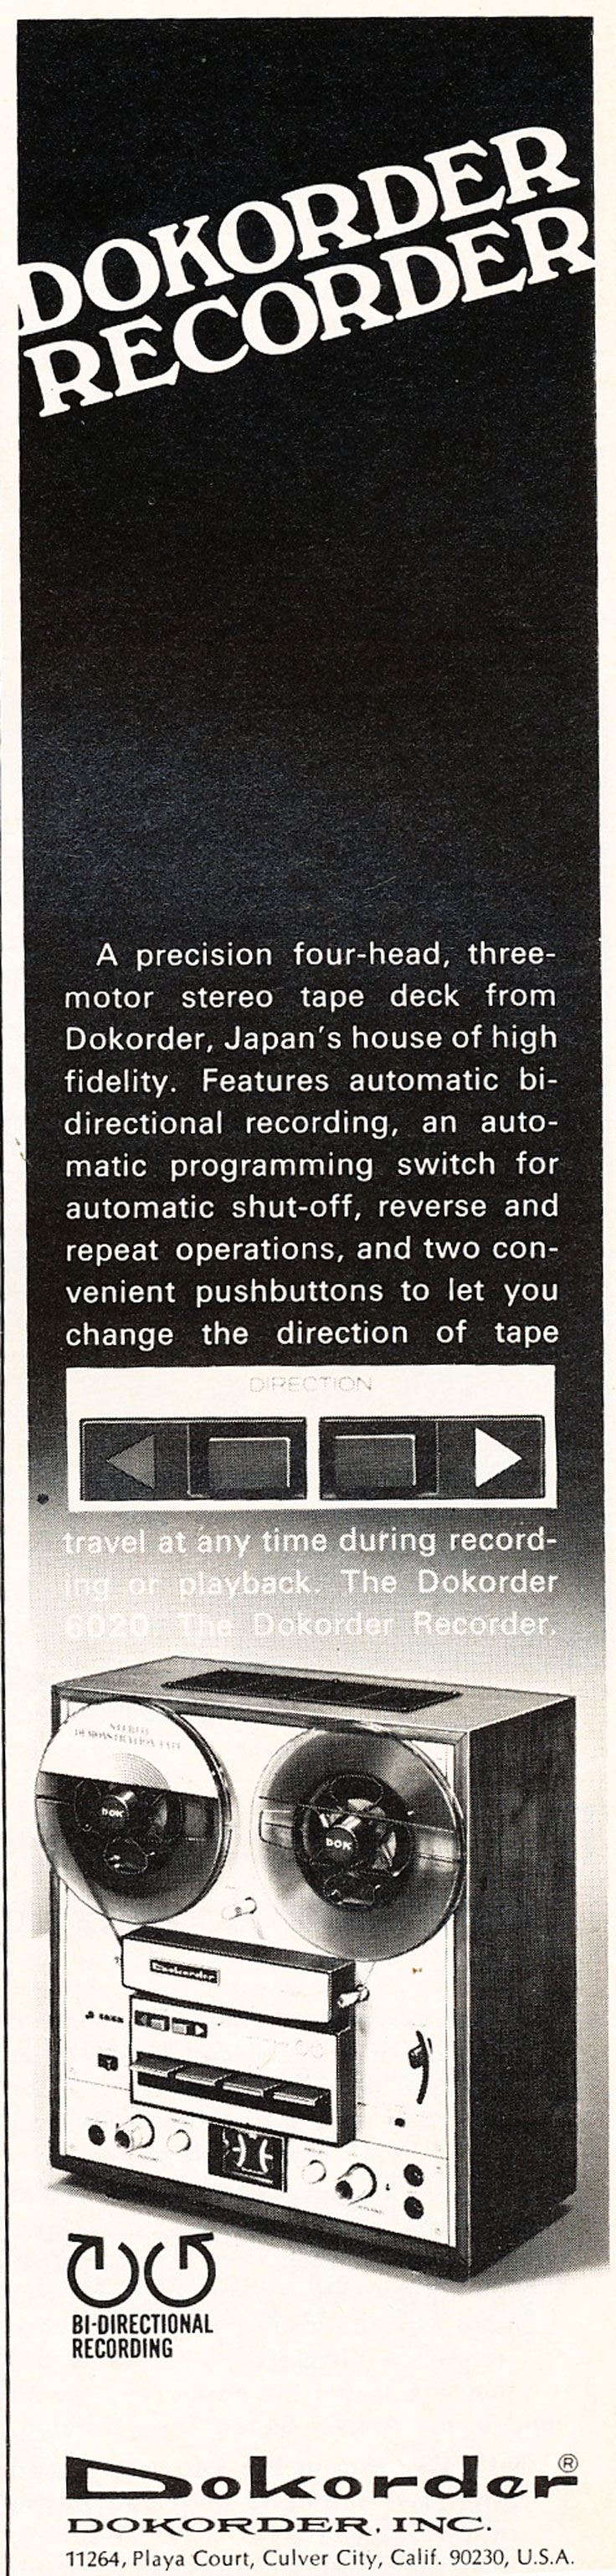 1976 ad for the Dokorder 7100 reel to reel tape recorder in the Reel2ReelTexas vintage recording collection